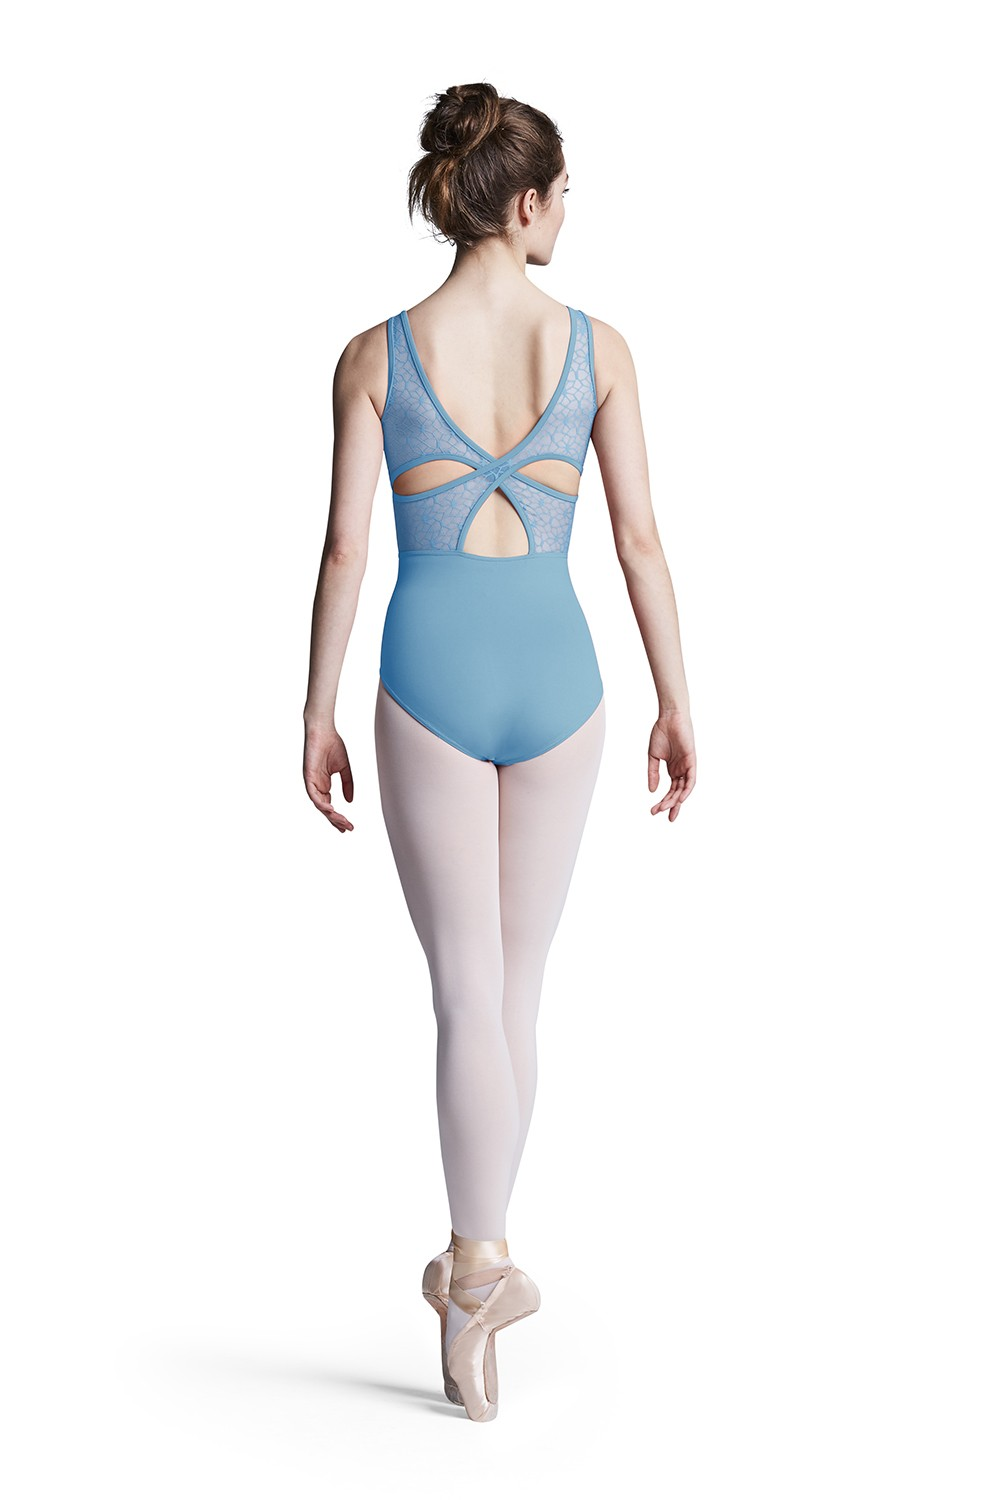 Valerie Women's Dance Leotards